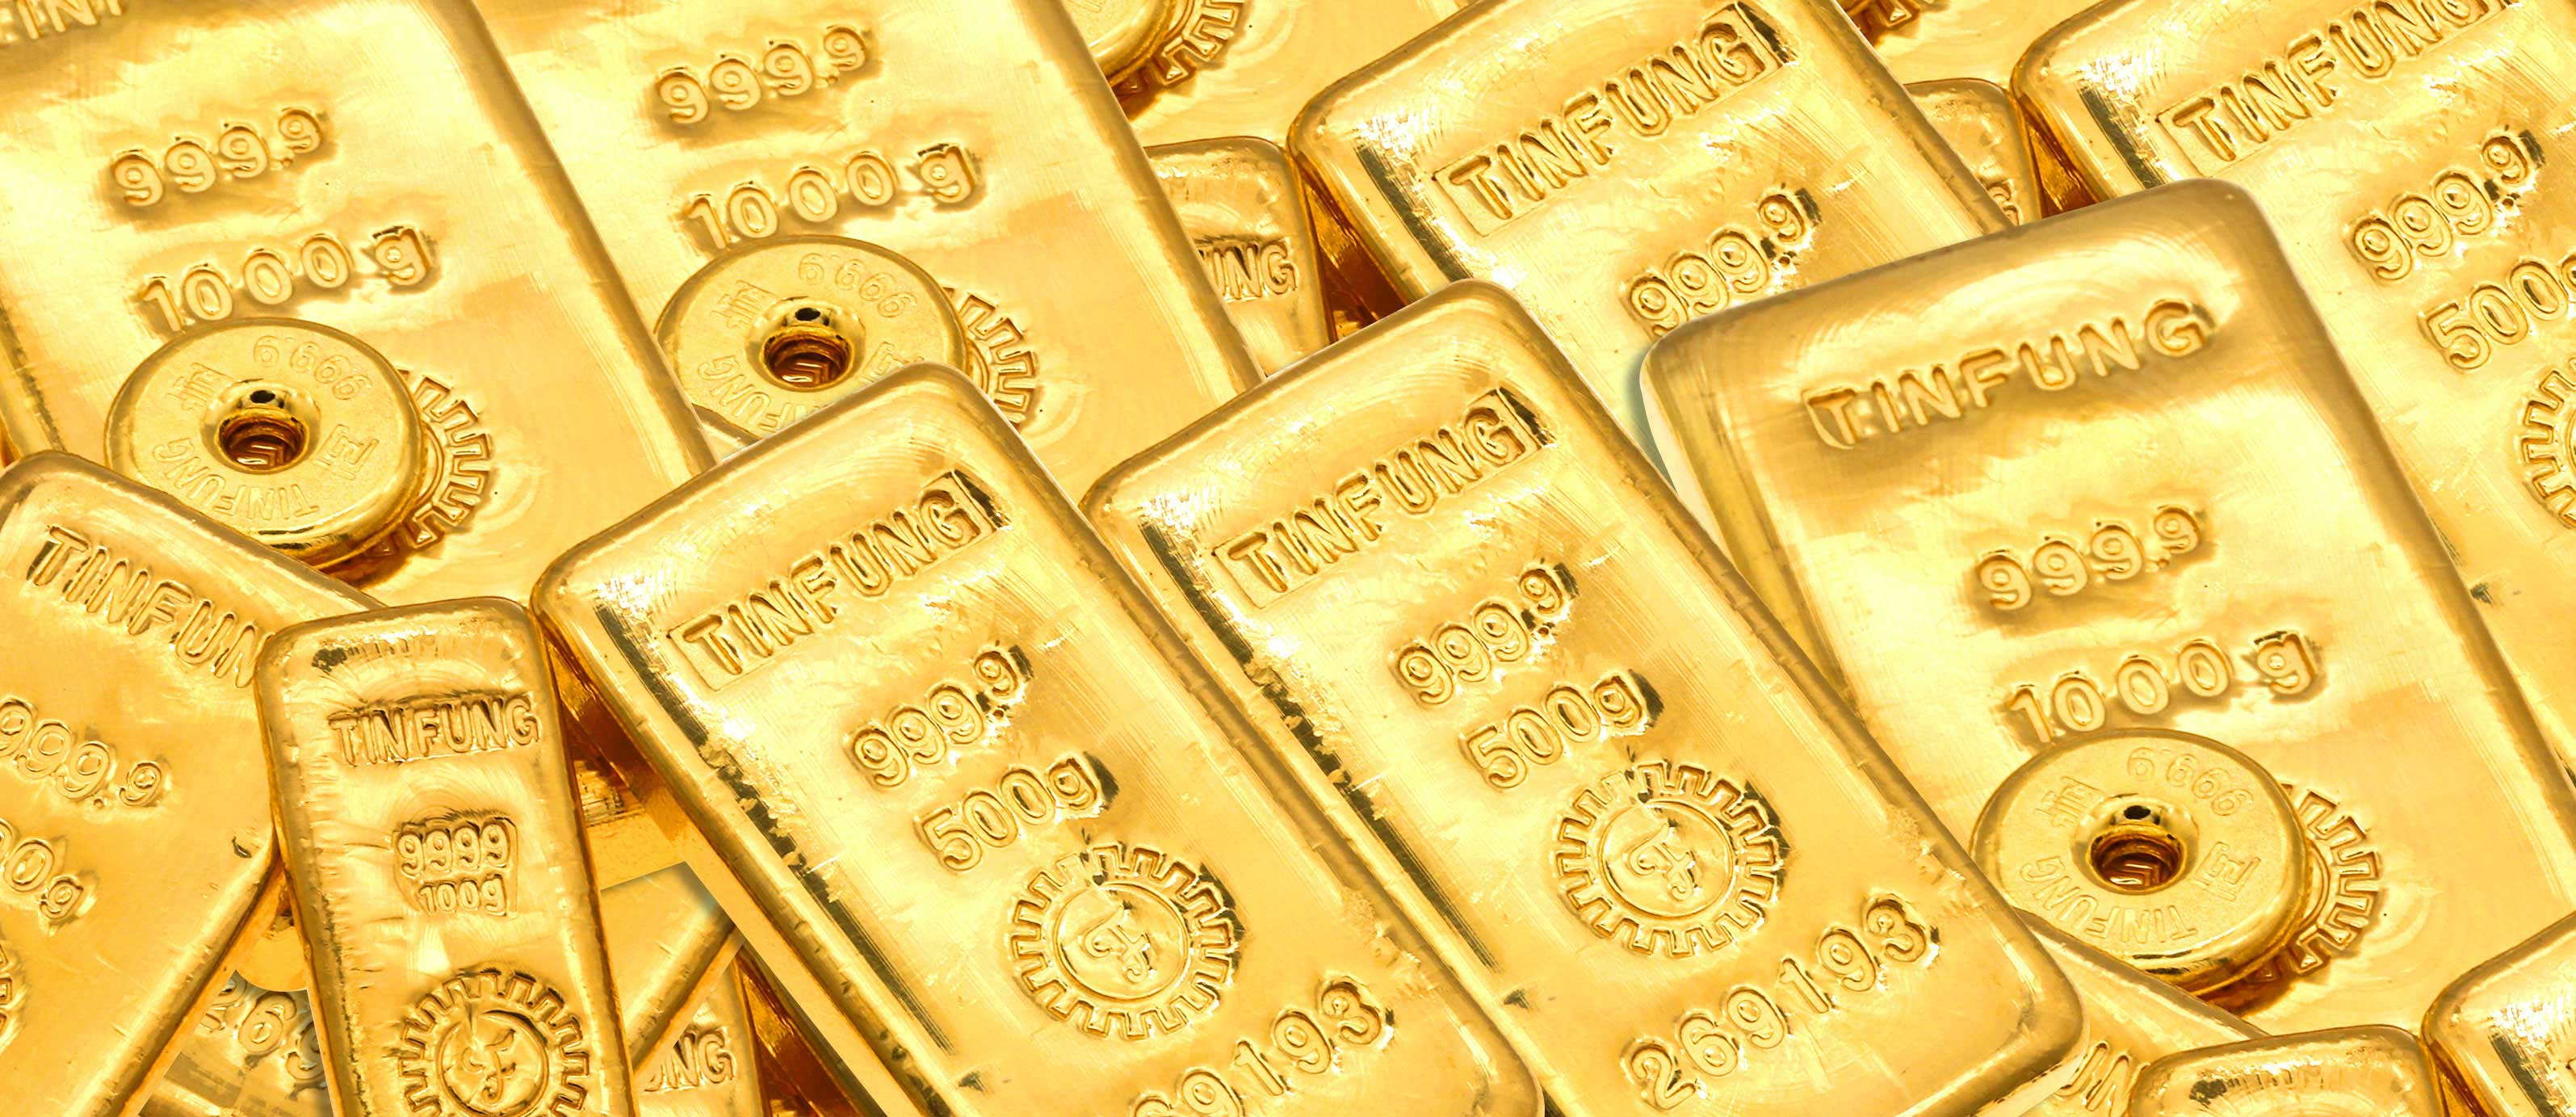 The overview of the global gold market